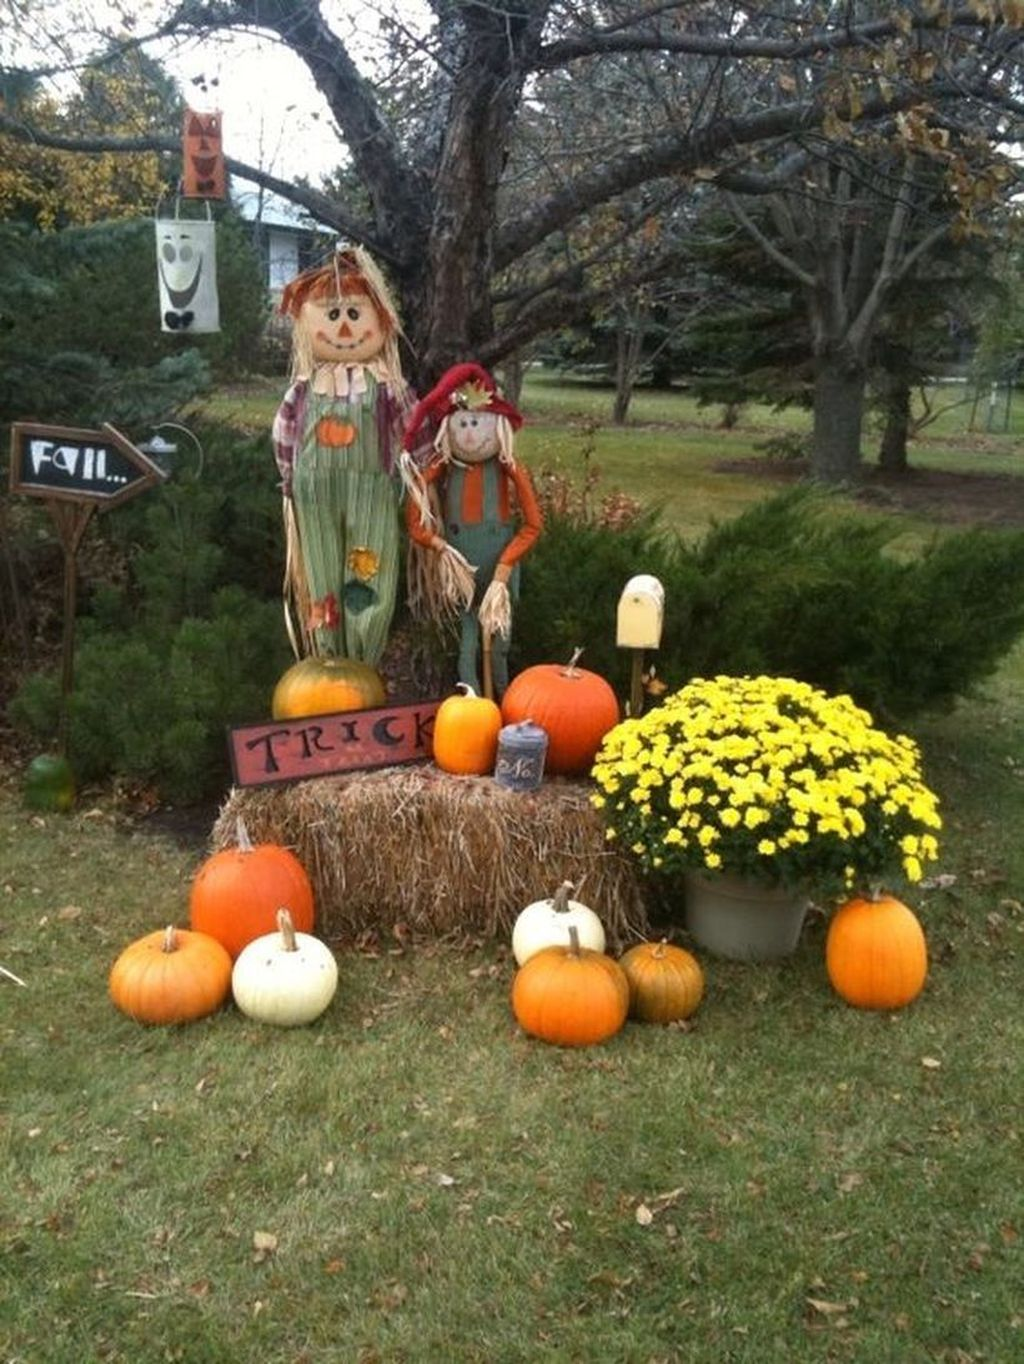 37 Lovely Fall Theme Garden Decor Ideas That You Will Like Belihouse Fall Yard Decor Fall Outdoor Decor Fall Decorations Porch